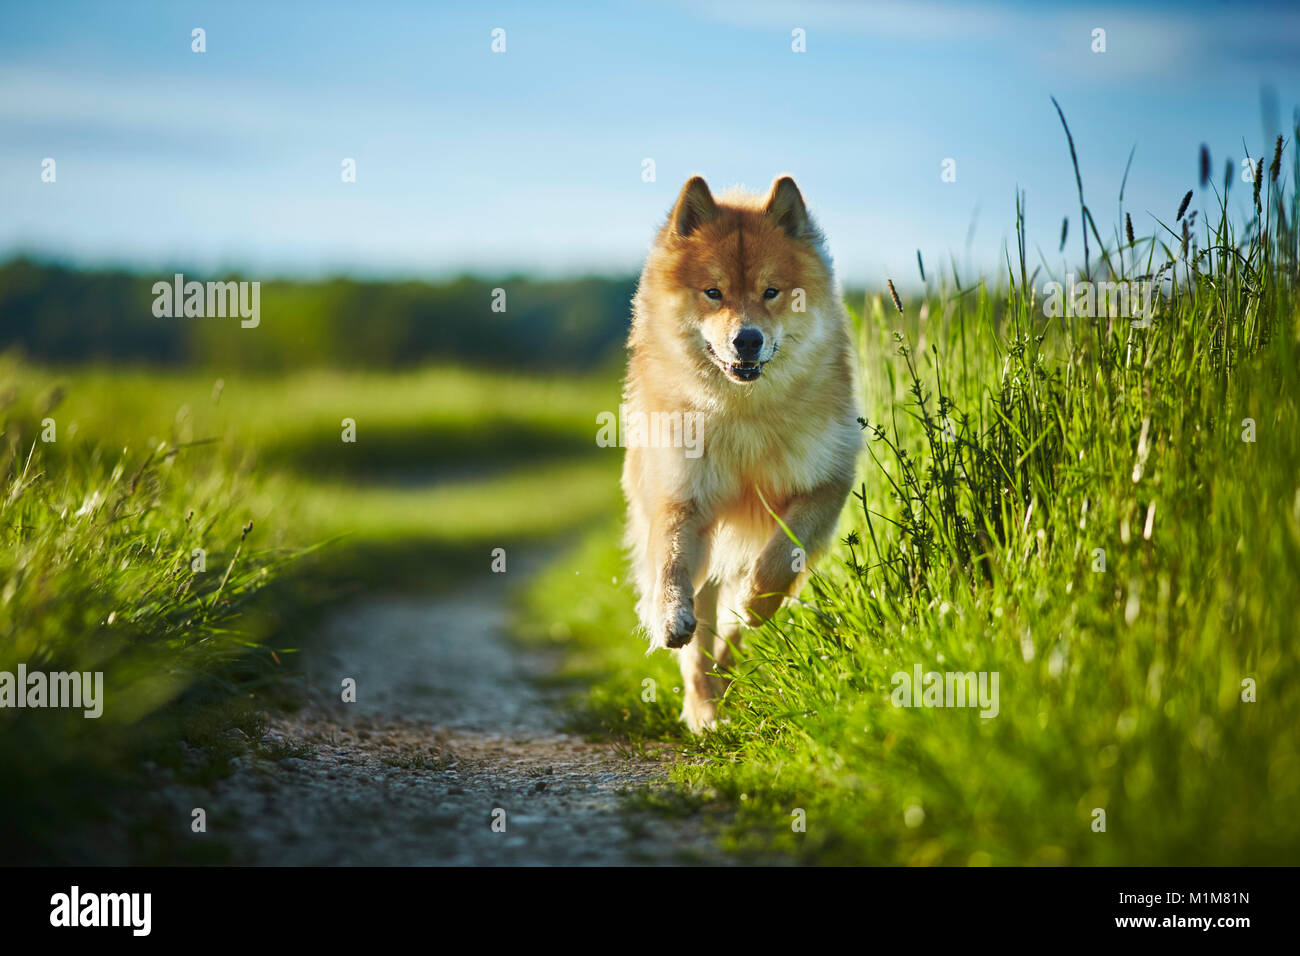 Eurasier, Eurasian. Adult dog running on a path in a meadow. Germany - Stock Image